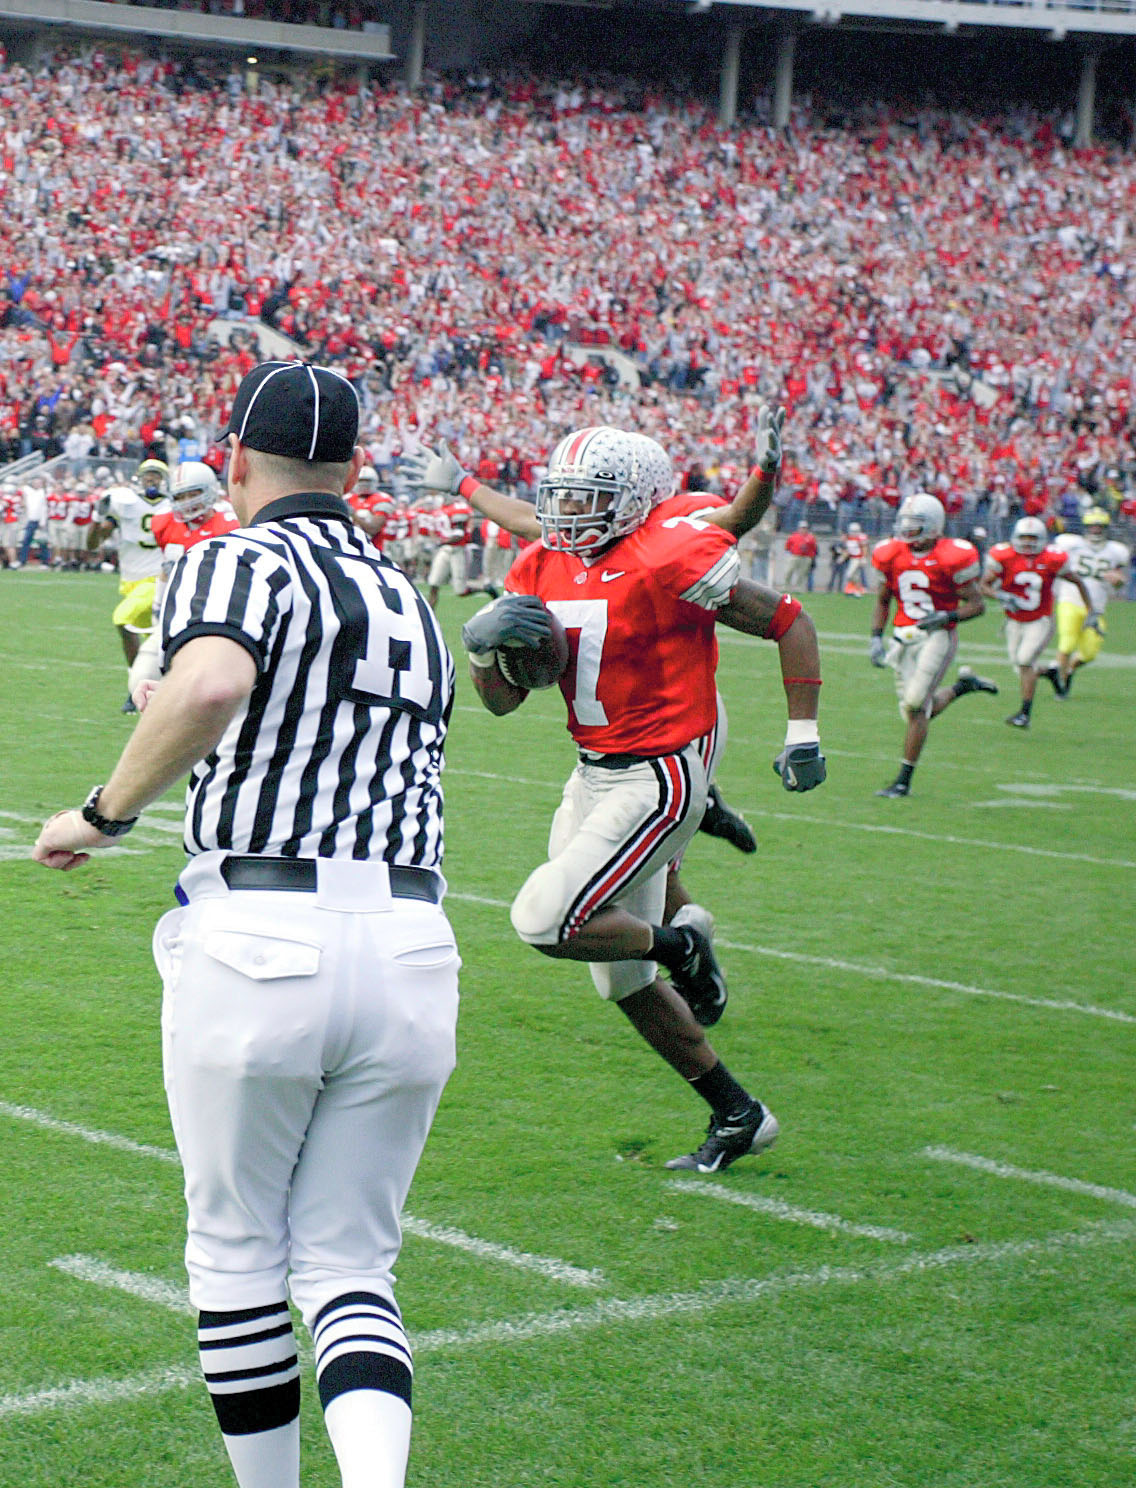 Ted Ginn Jr. housing a punt for six.